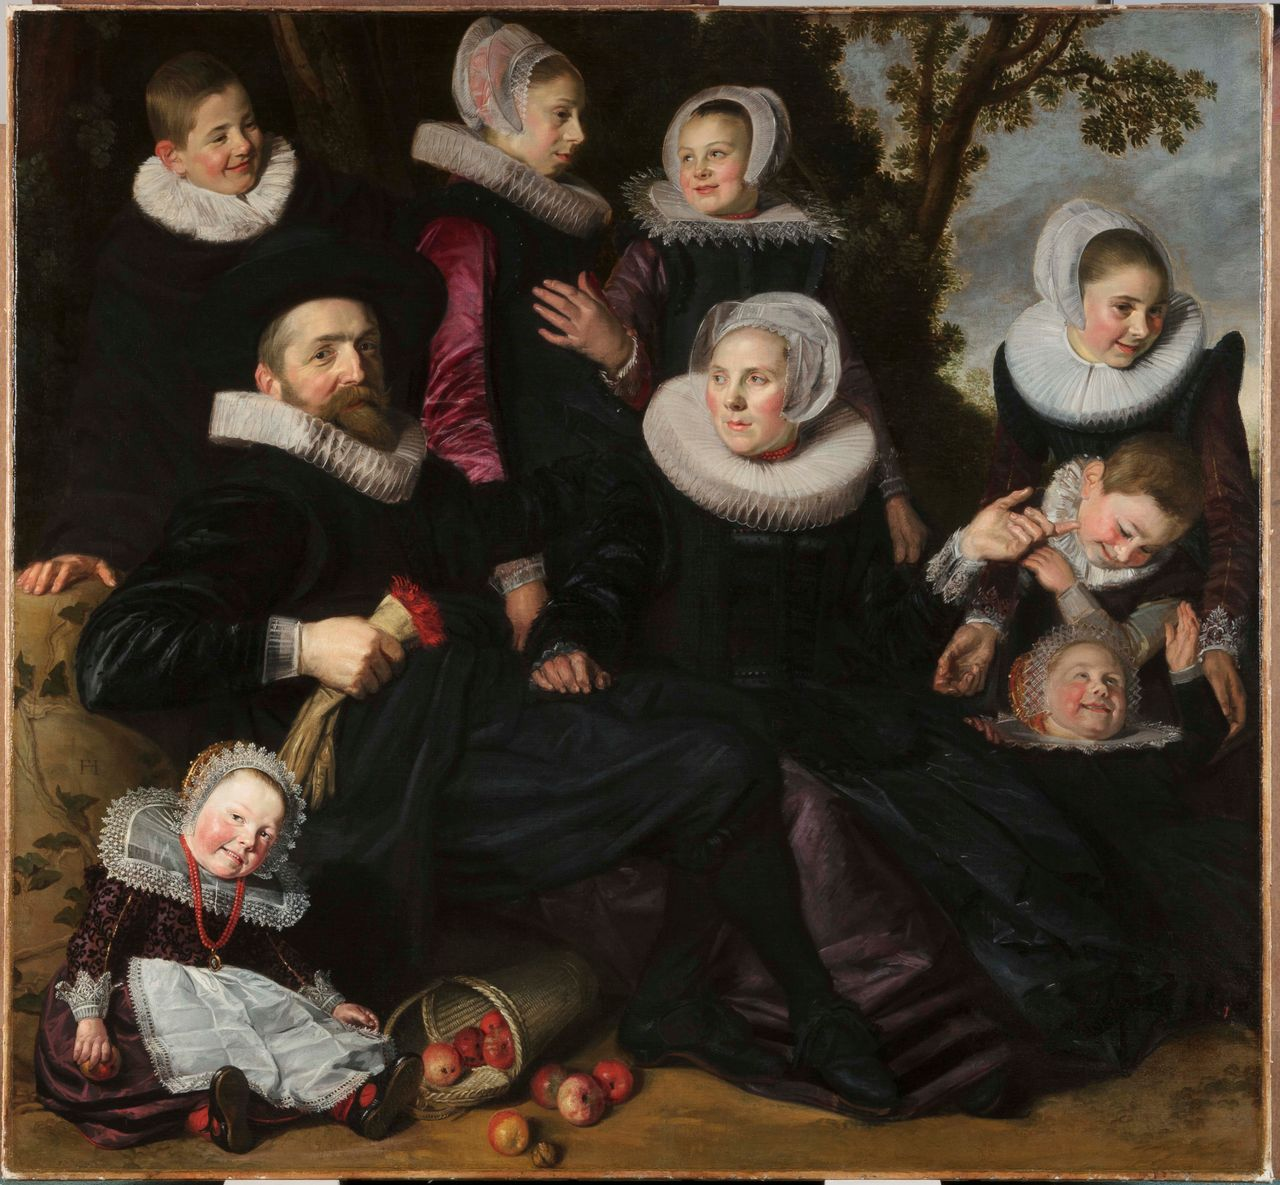 Frans Hals (Dutch, 1582/83–1666), The Van Campen Family in a Landscape (fragment), ca. 1623–25, oil on canvas. 151 x 163.6 cm. Toledo Museum of Art, Toledo, Ohio, inv. 2011.80